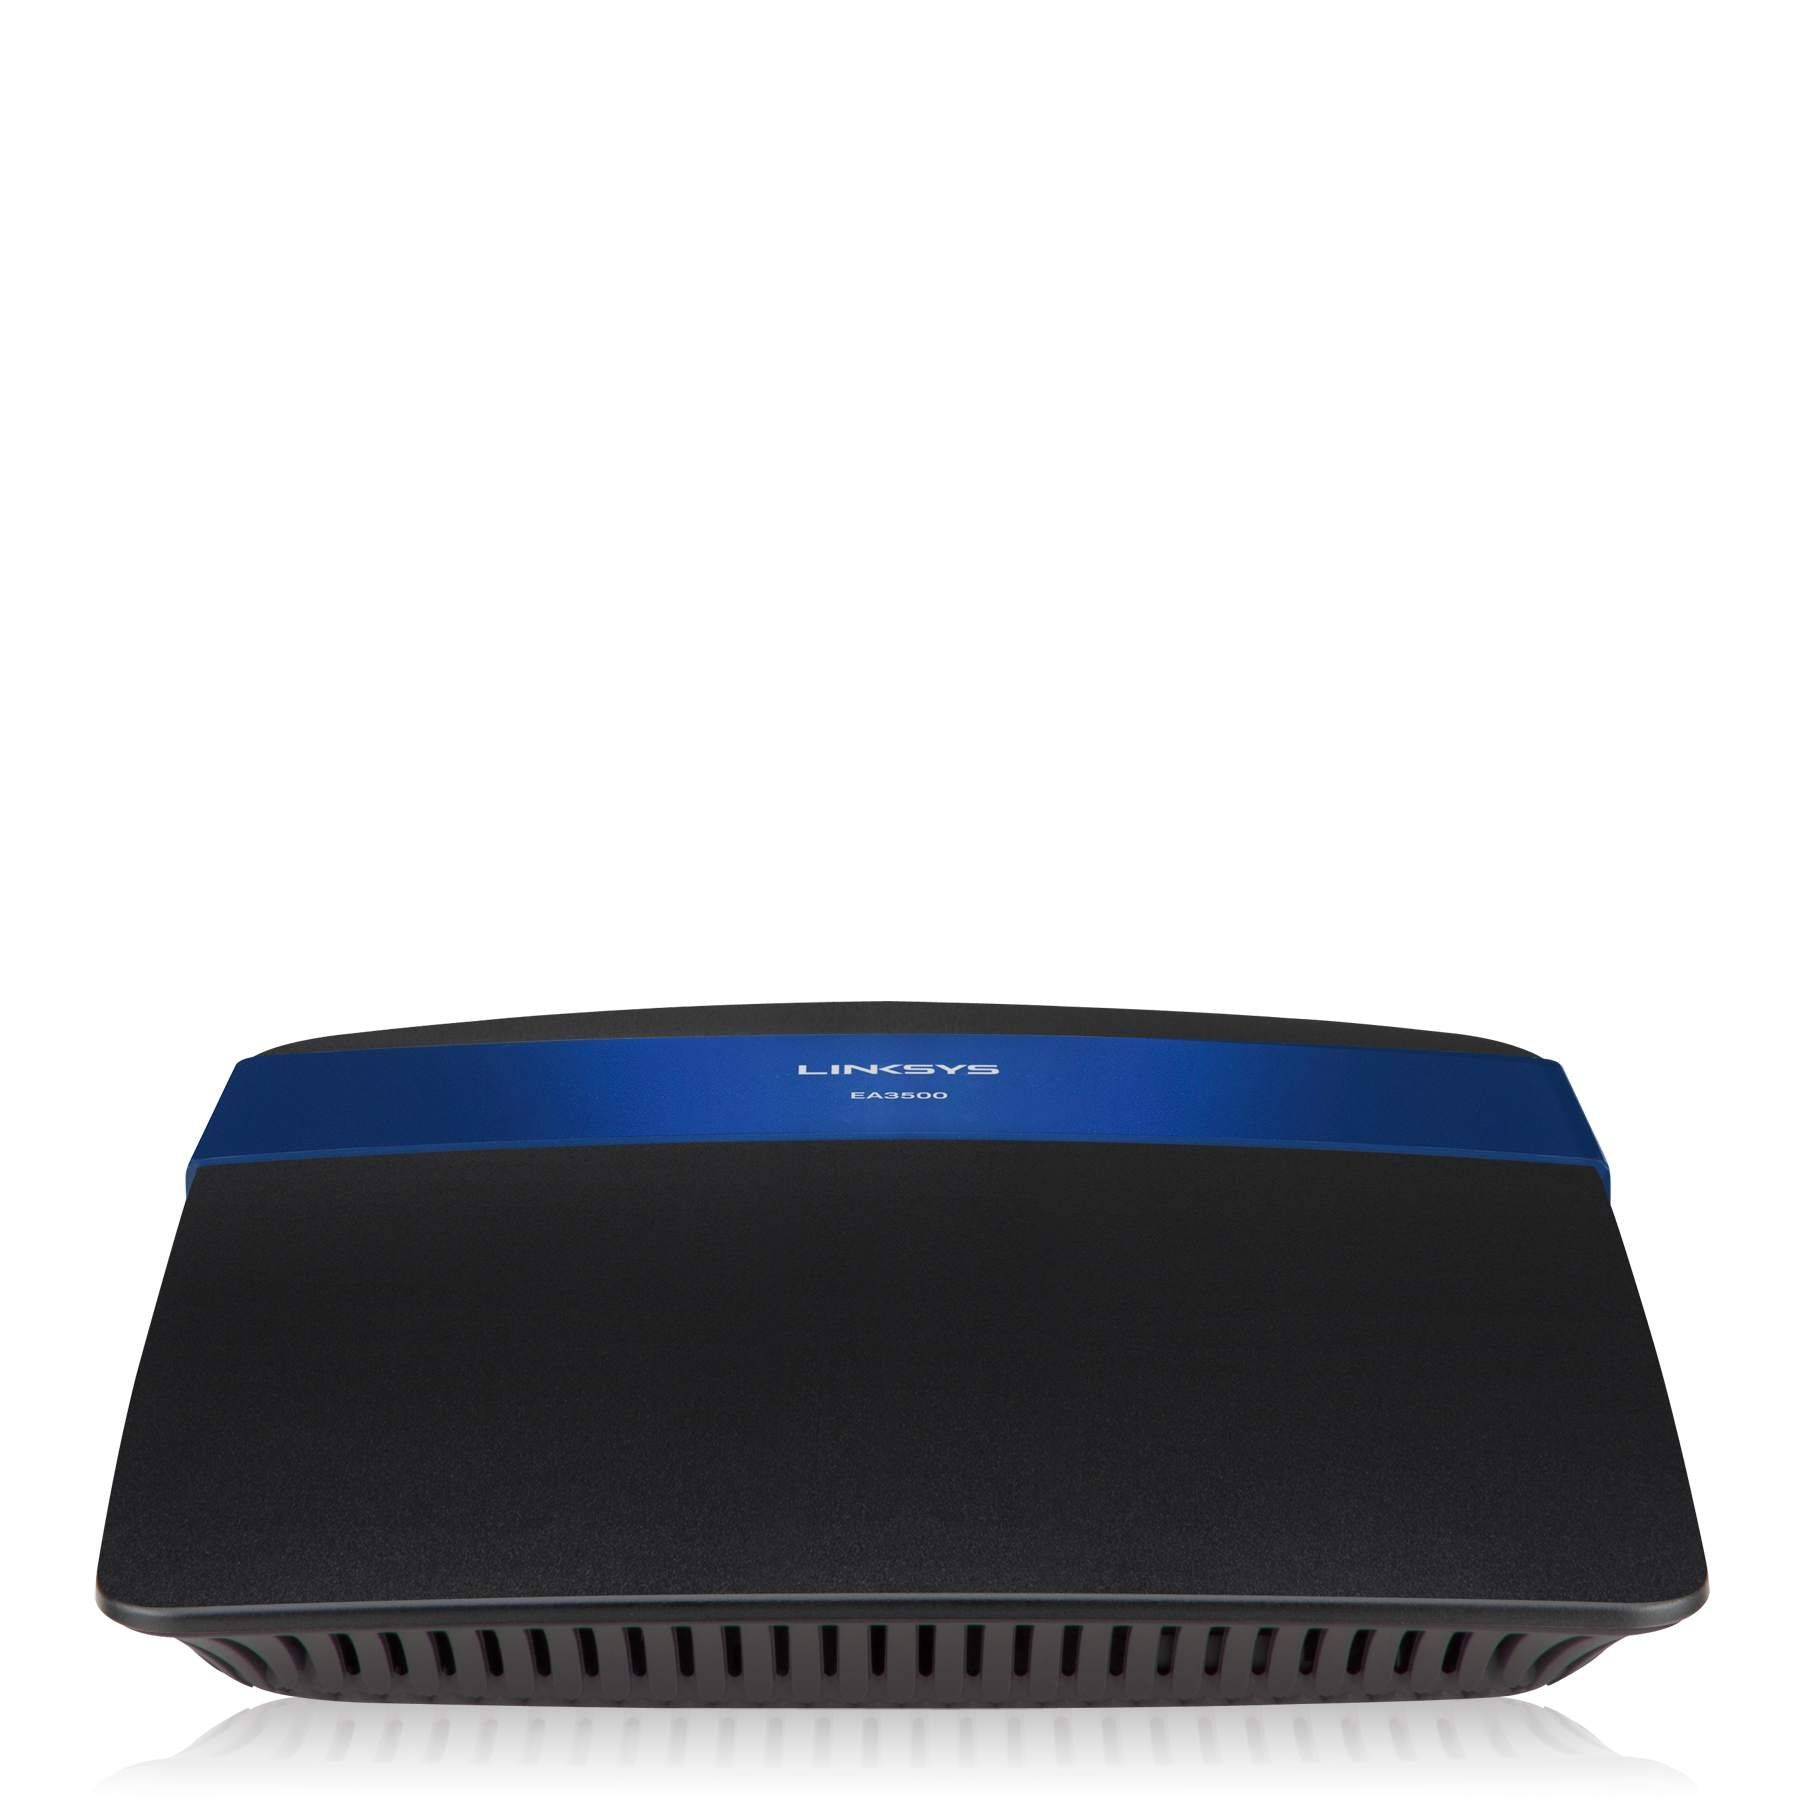 Linksys N750 Wi-Fi Wireless Dual-Band+ Router with Gigabit & USB Ports, Smart Wi-Fi App Enabled to Control Your Network from Anywhere (EA3500) by Linksys